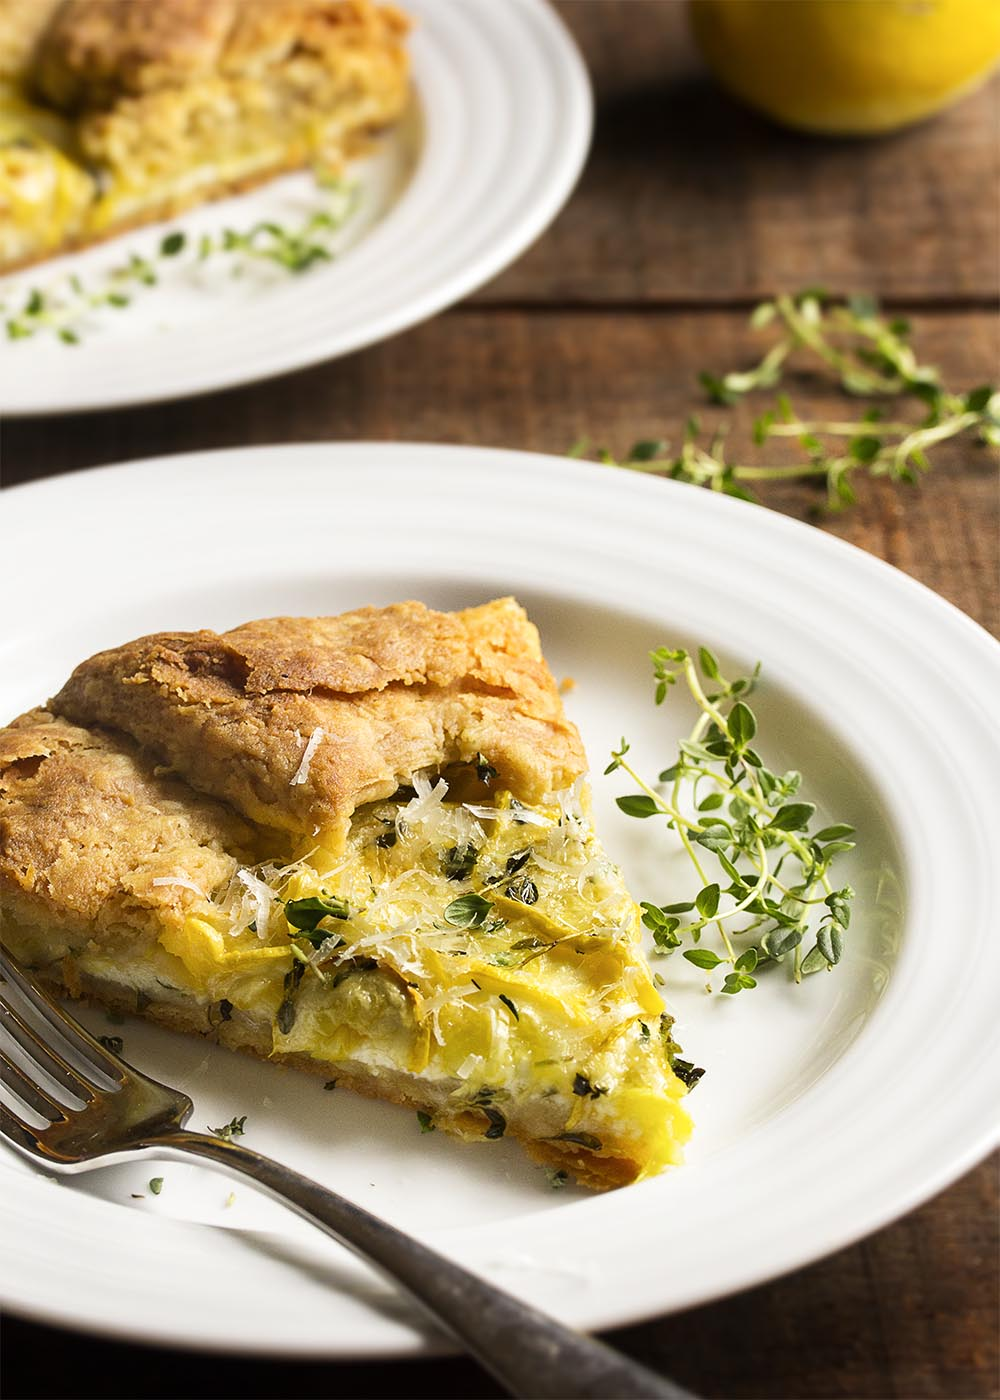 Summer Squash and Ricotta Crostata - This summer squash and ricotta crostata is a great Italian free-form tart that makes the most of summer produce. Can be made ahead and is great warm or at room temperature! | justalittlebitofbacon.com